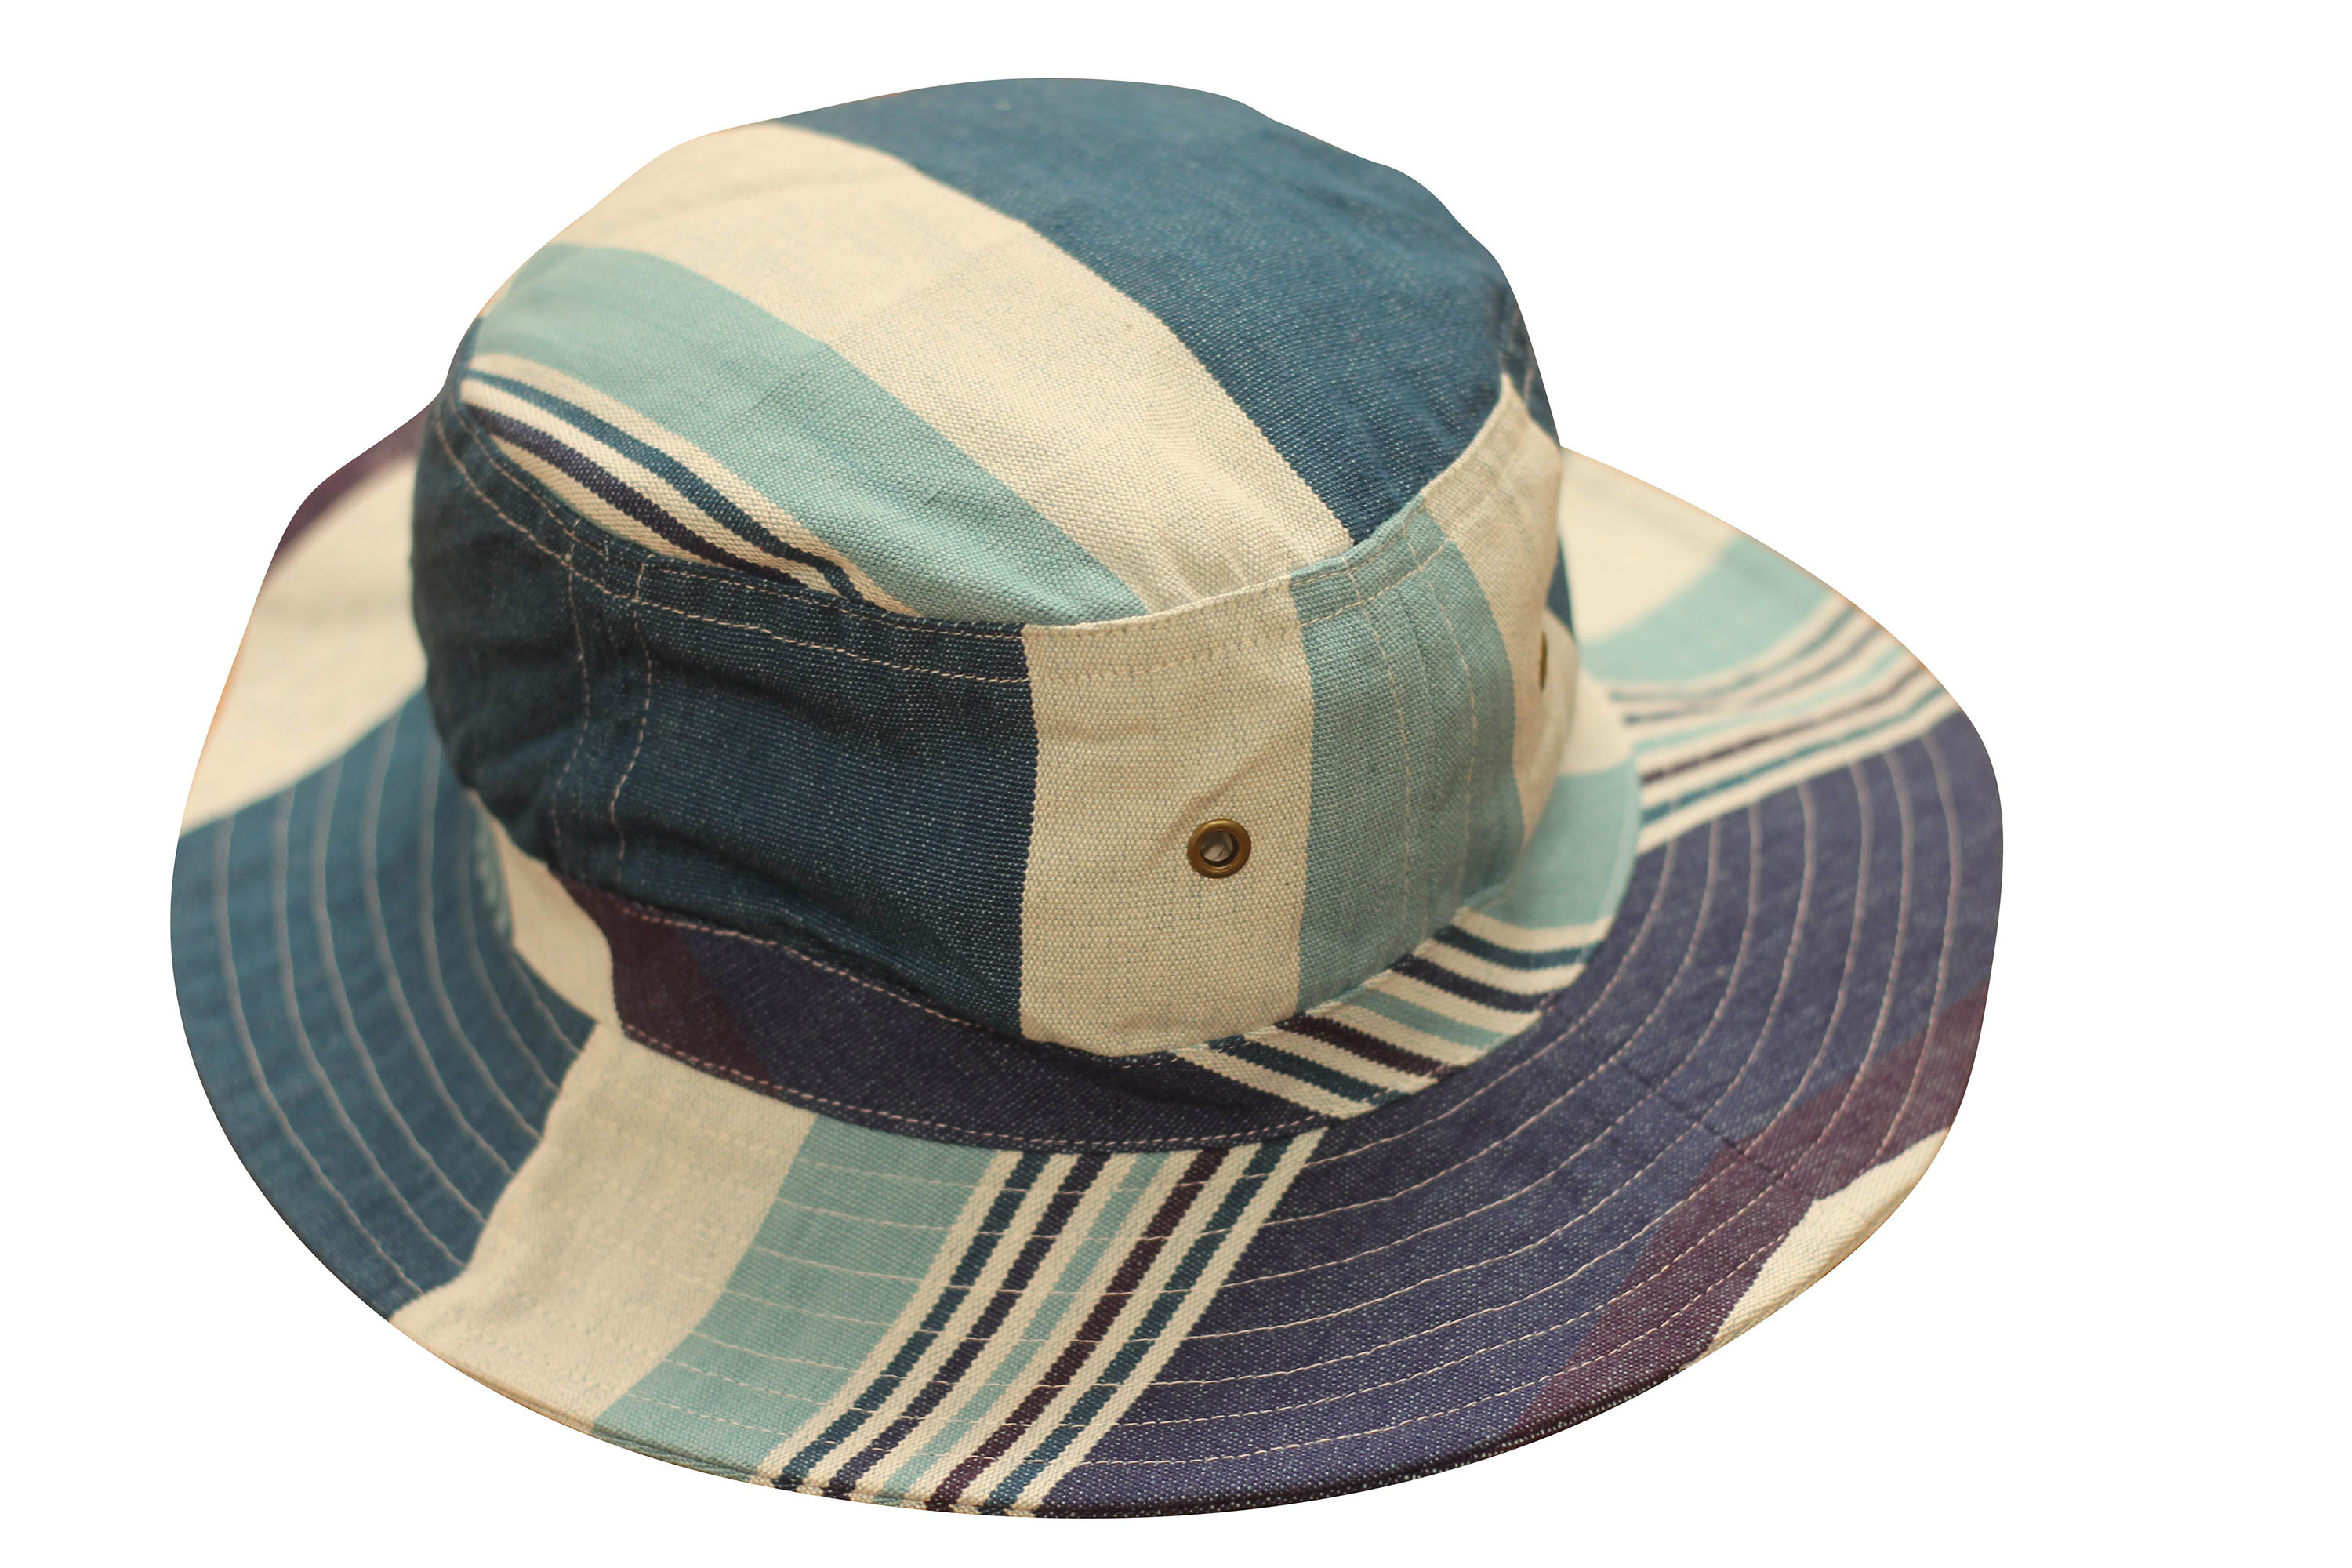 Teal Striped Sun Hats | Sun Protection Hat  Swing Stripes